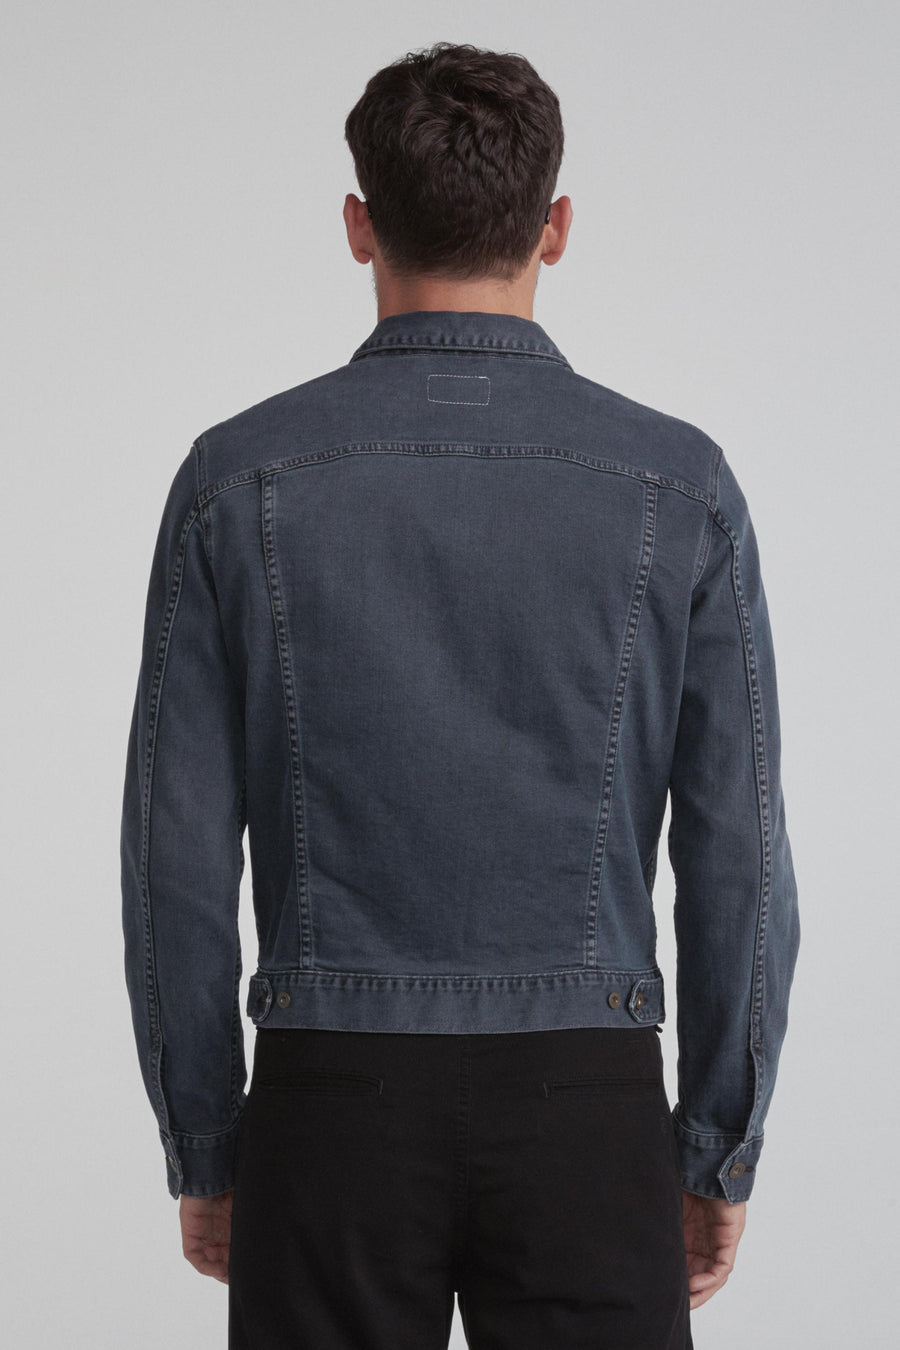 Definitive Jean Jacket - Minna Blue - Pavilion